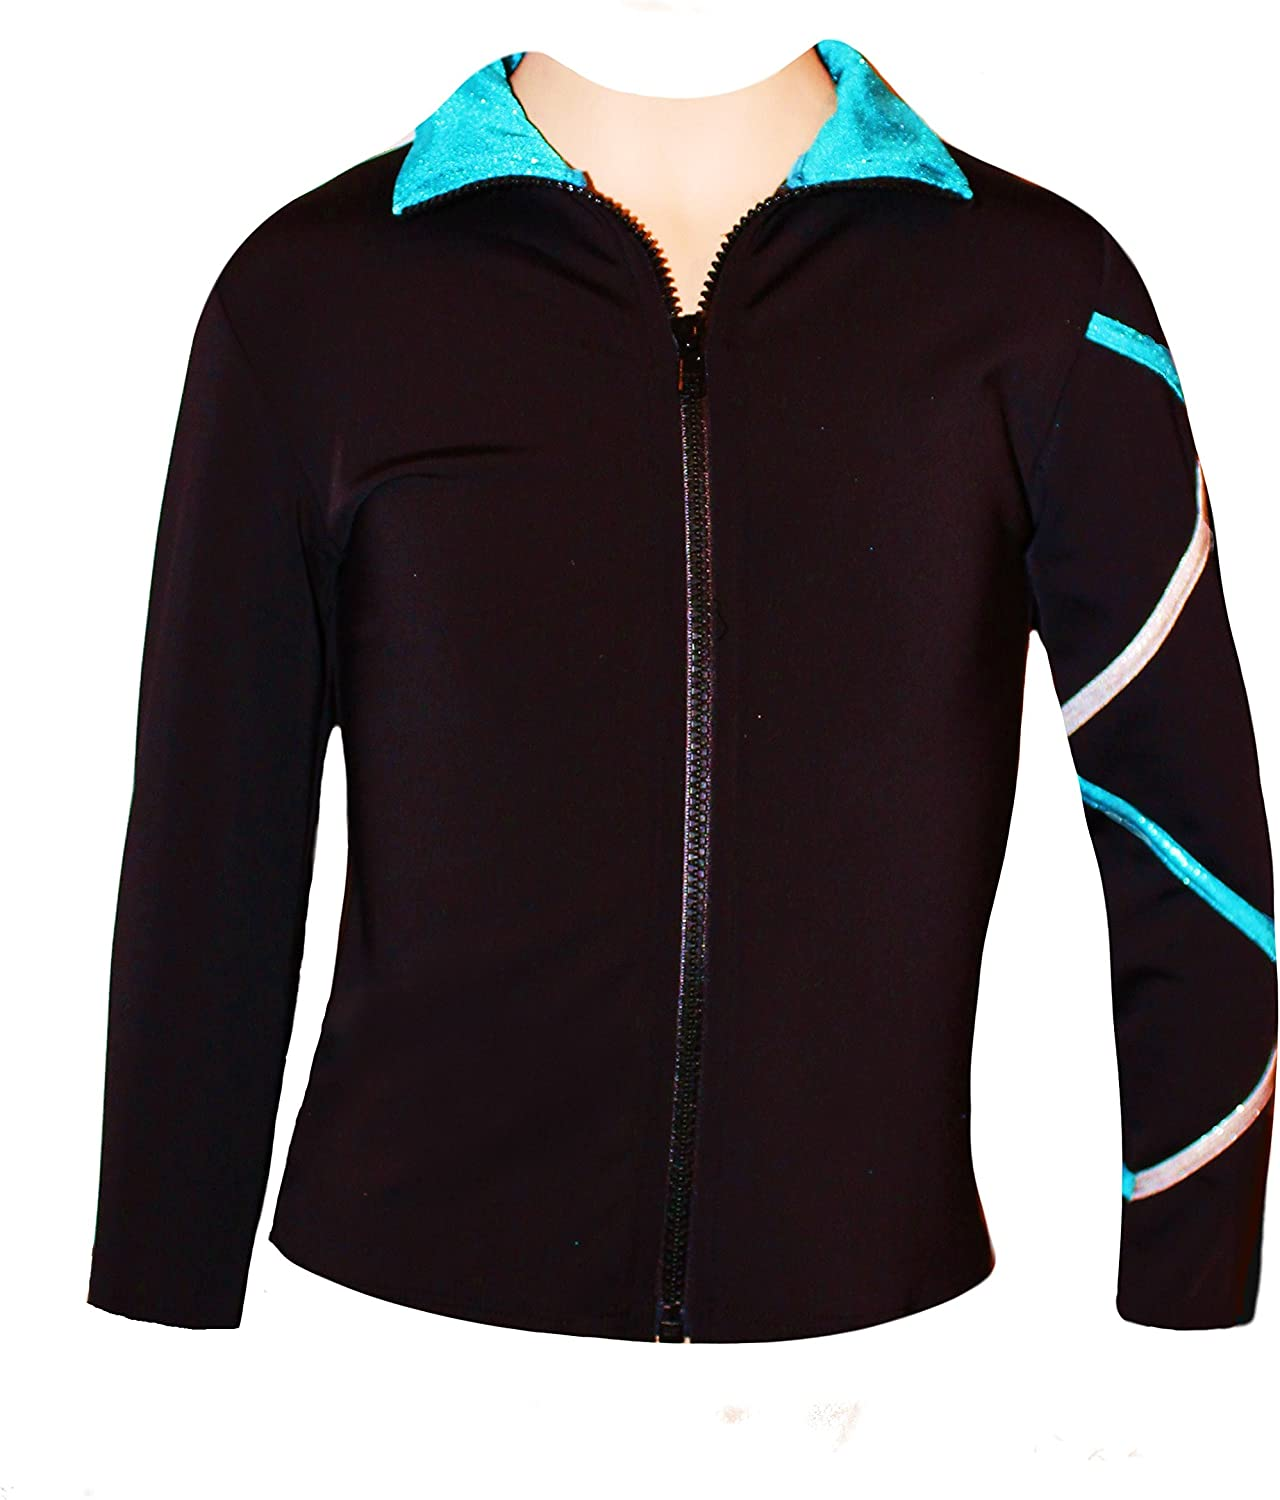 Ice Fire Figure Skating Criss Cross Jacket - Silver/Turquoise